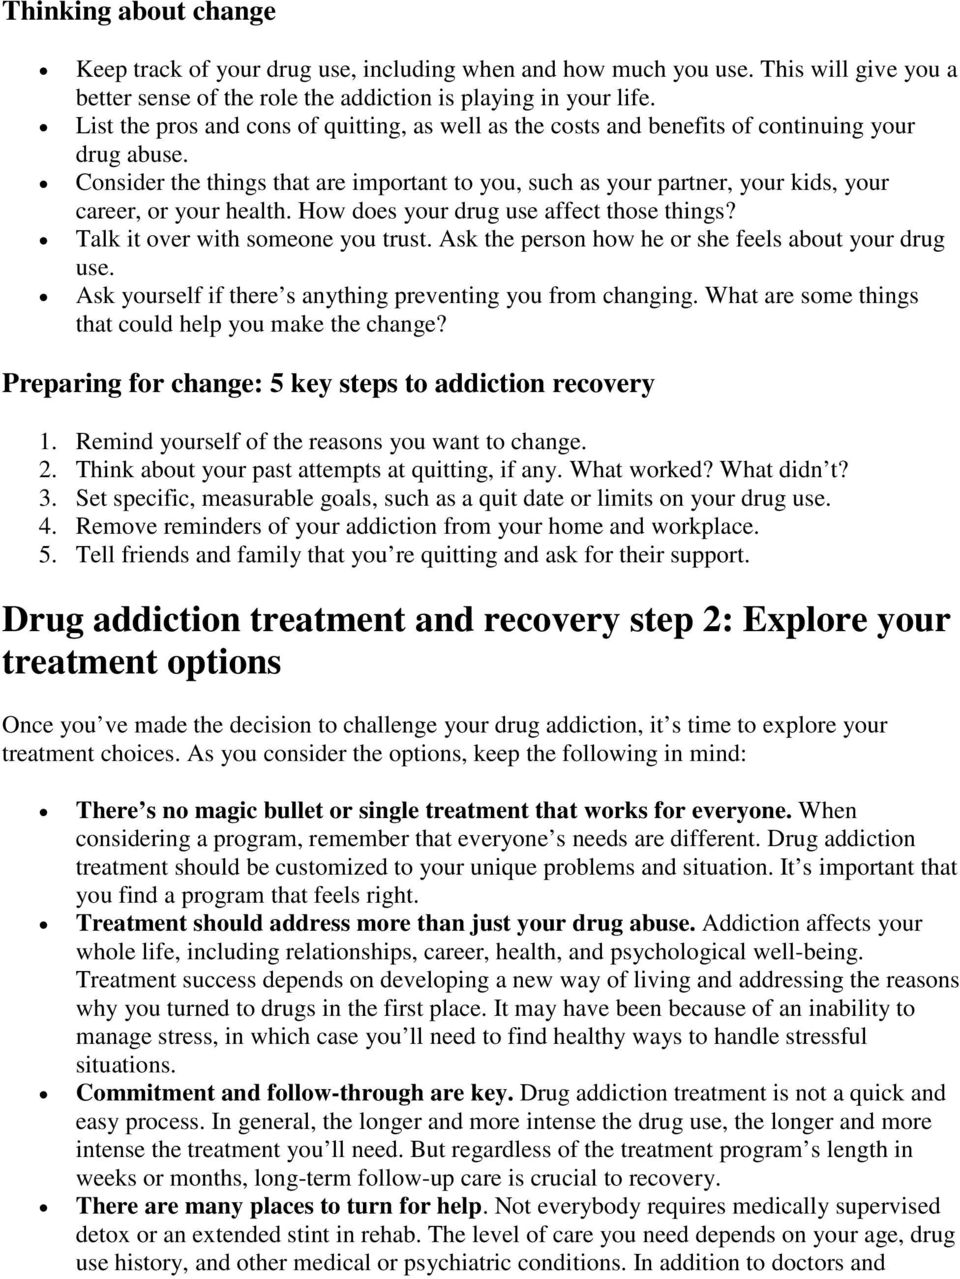 Consider the things that are important to you, such as your partner, your kids, your career, or your health. How does your drug use affect those things? Talk it over with someone you trust.